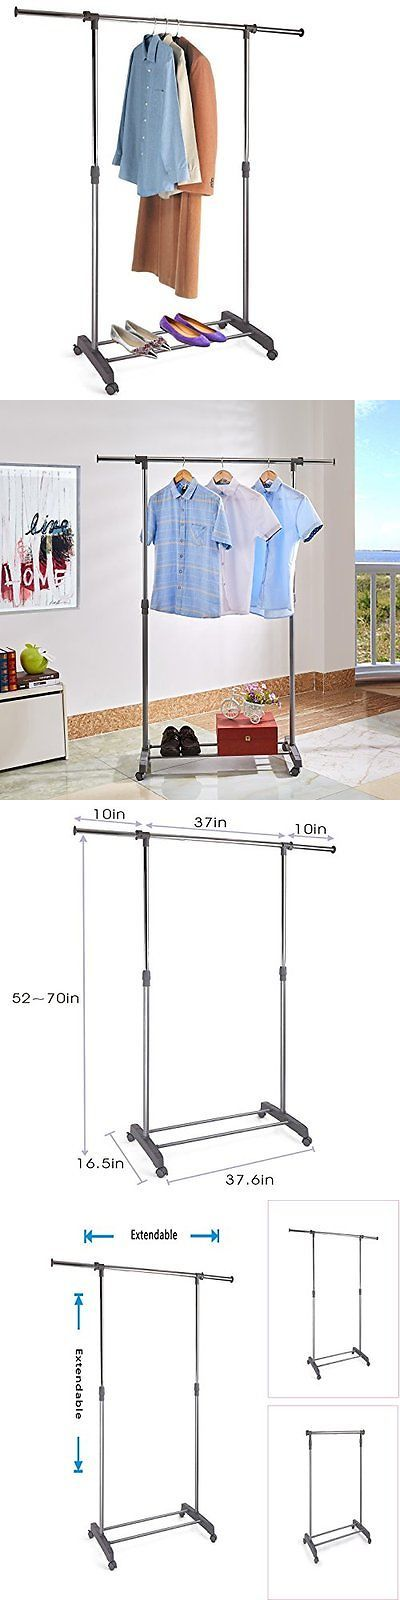 Garment Racks 166325: Proaid Adjustable Single Rail Garment Rack Portable Clothing Hanging Rolling -> BUY IT NOW ONLY: $40.79 on eBay!